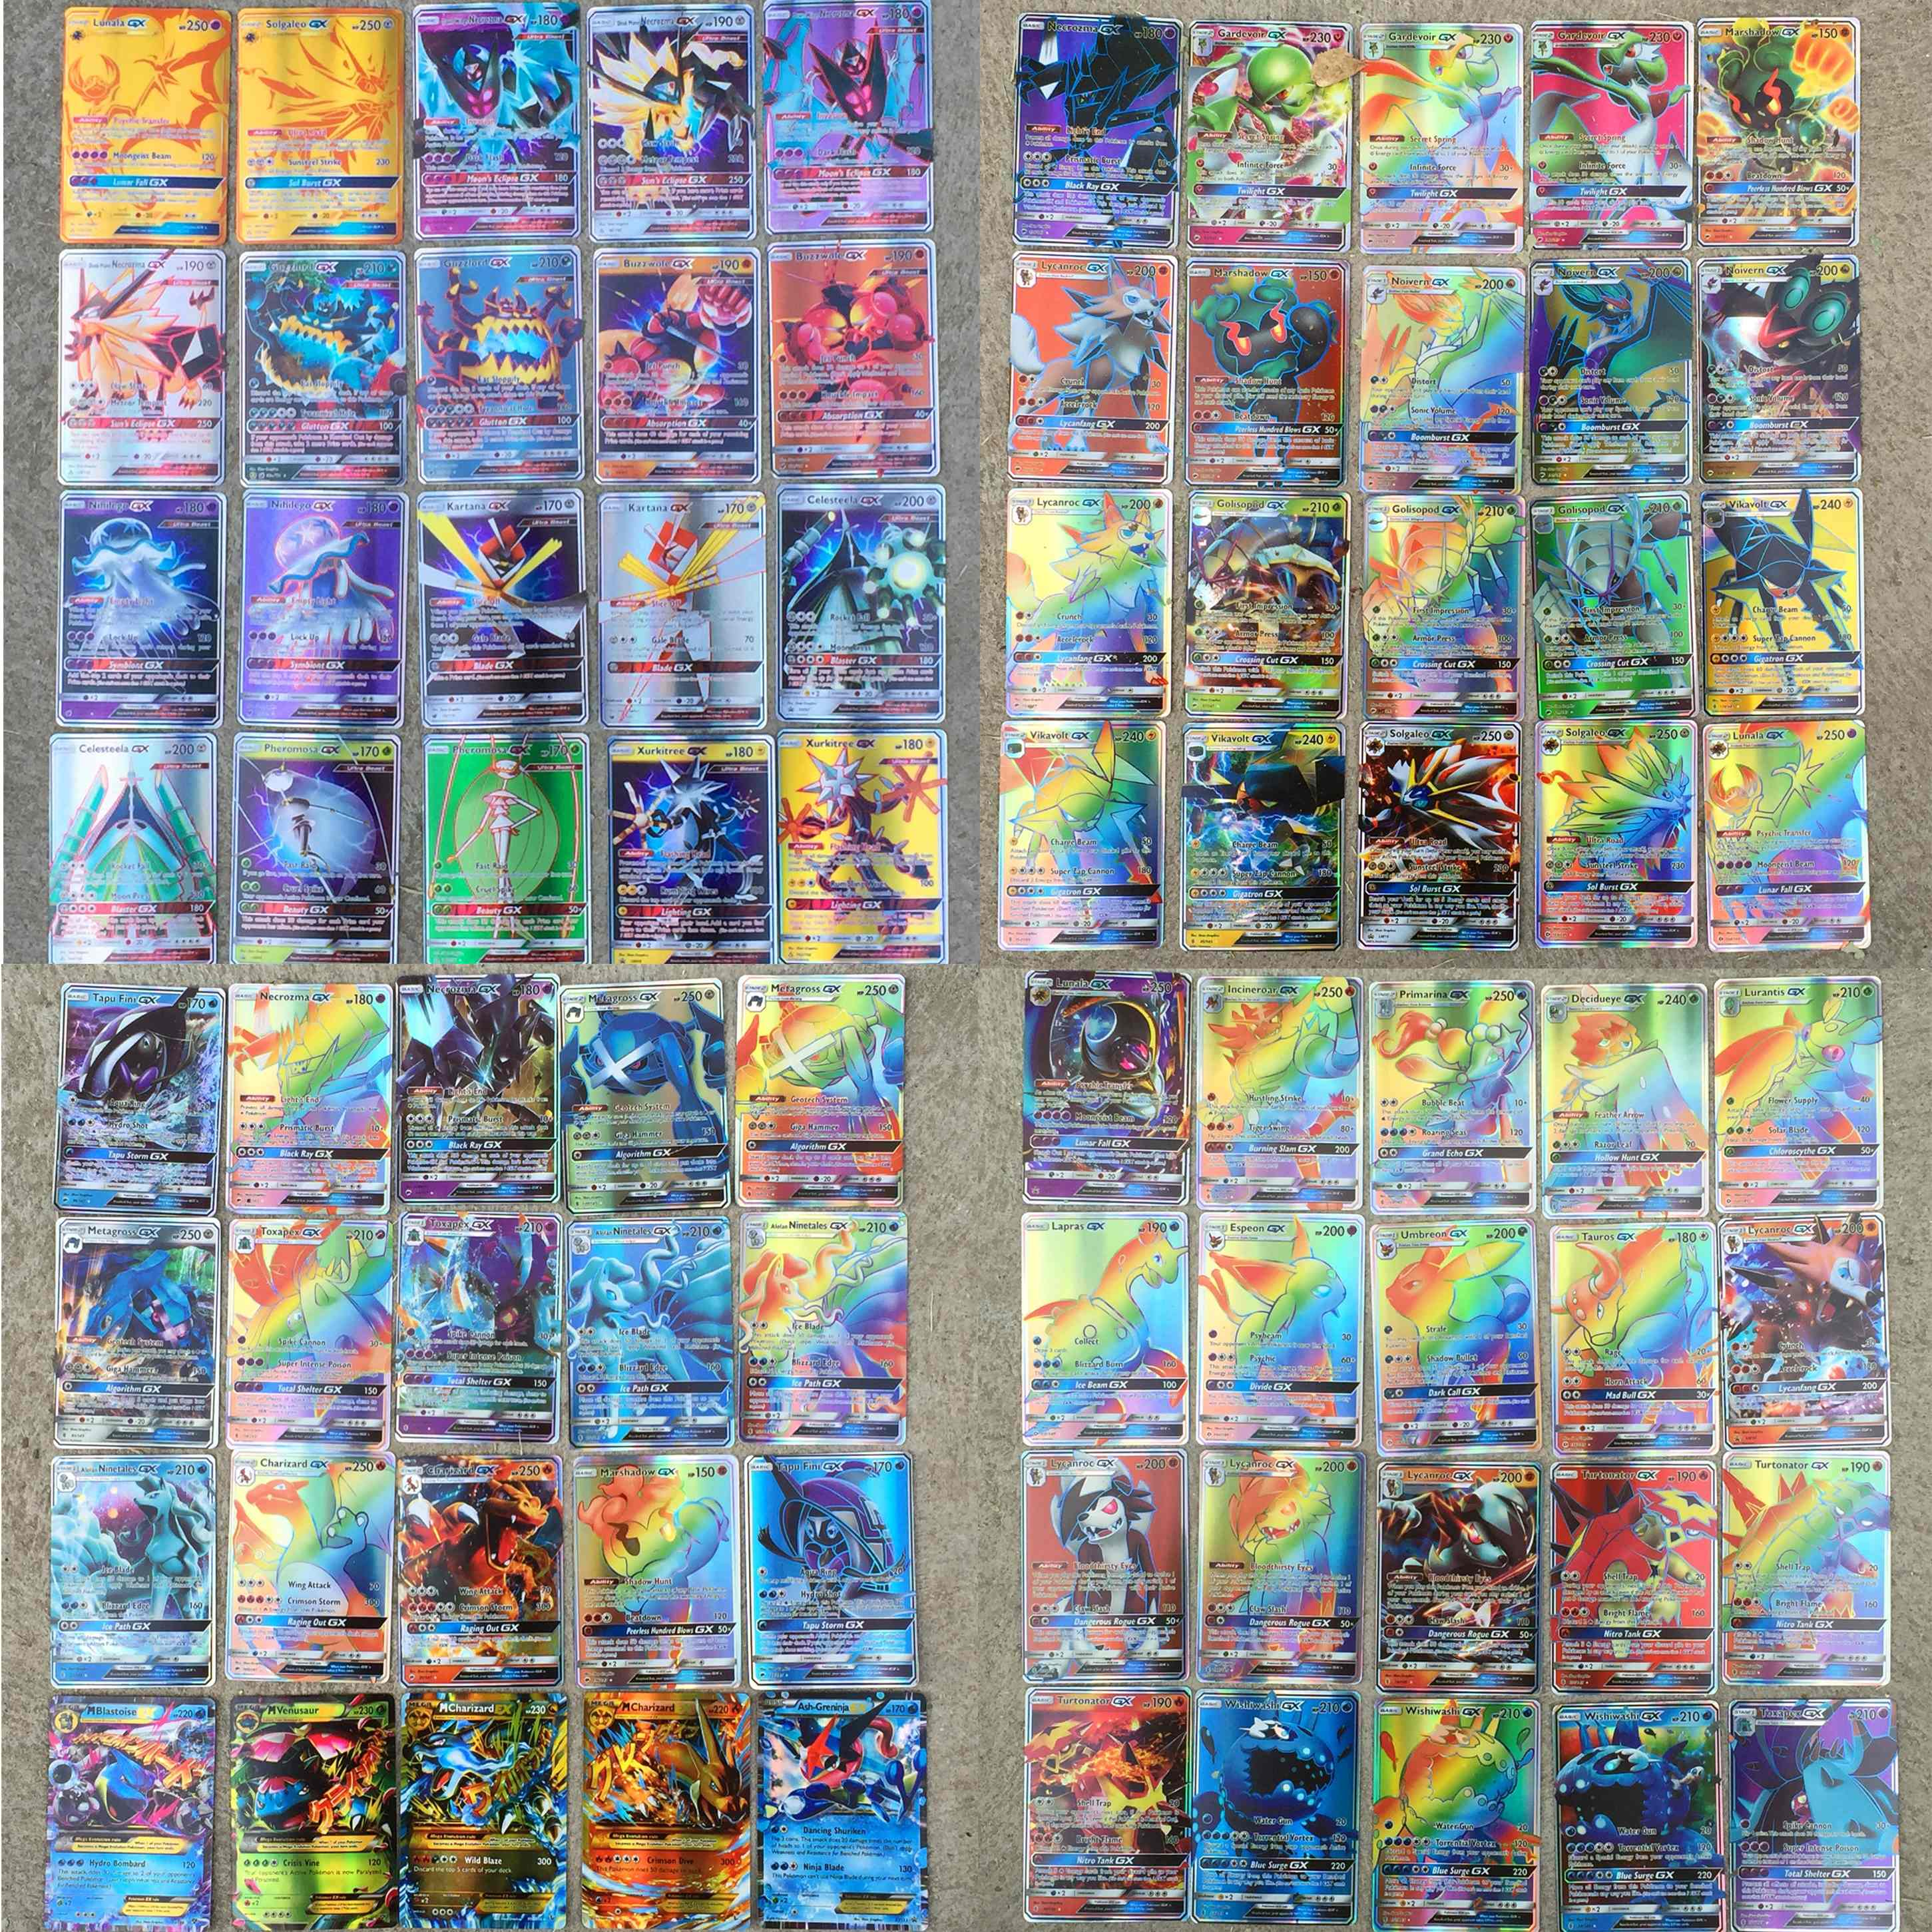 NEW Cards 120C Pcs 115GX + 5MEGA  Ultra Beast TCG Flash Shining Cards Game Battle Trading Cards For Children Toys Xmas